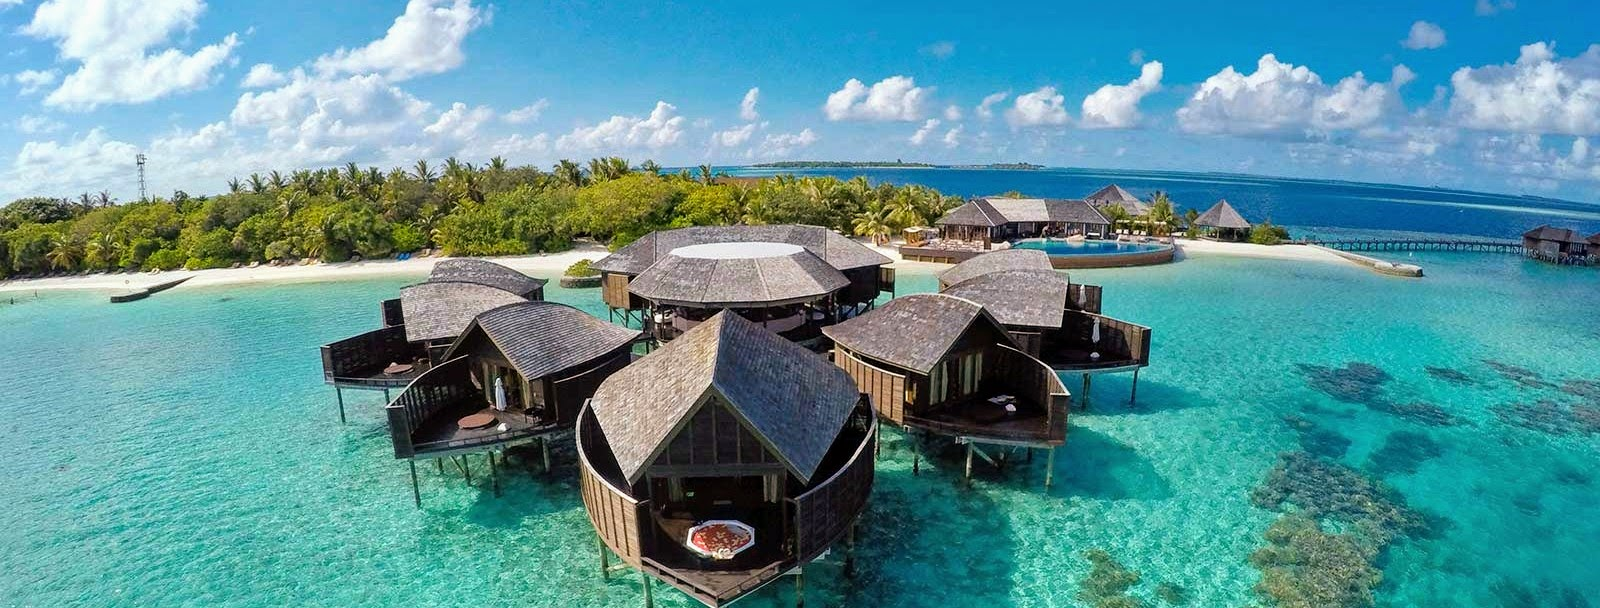 Aerial, Tamara Spa by Mandara, Lily Beach Resort & Spa, Maldives